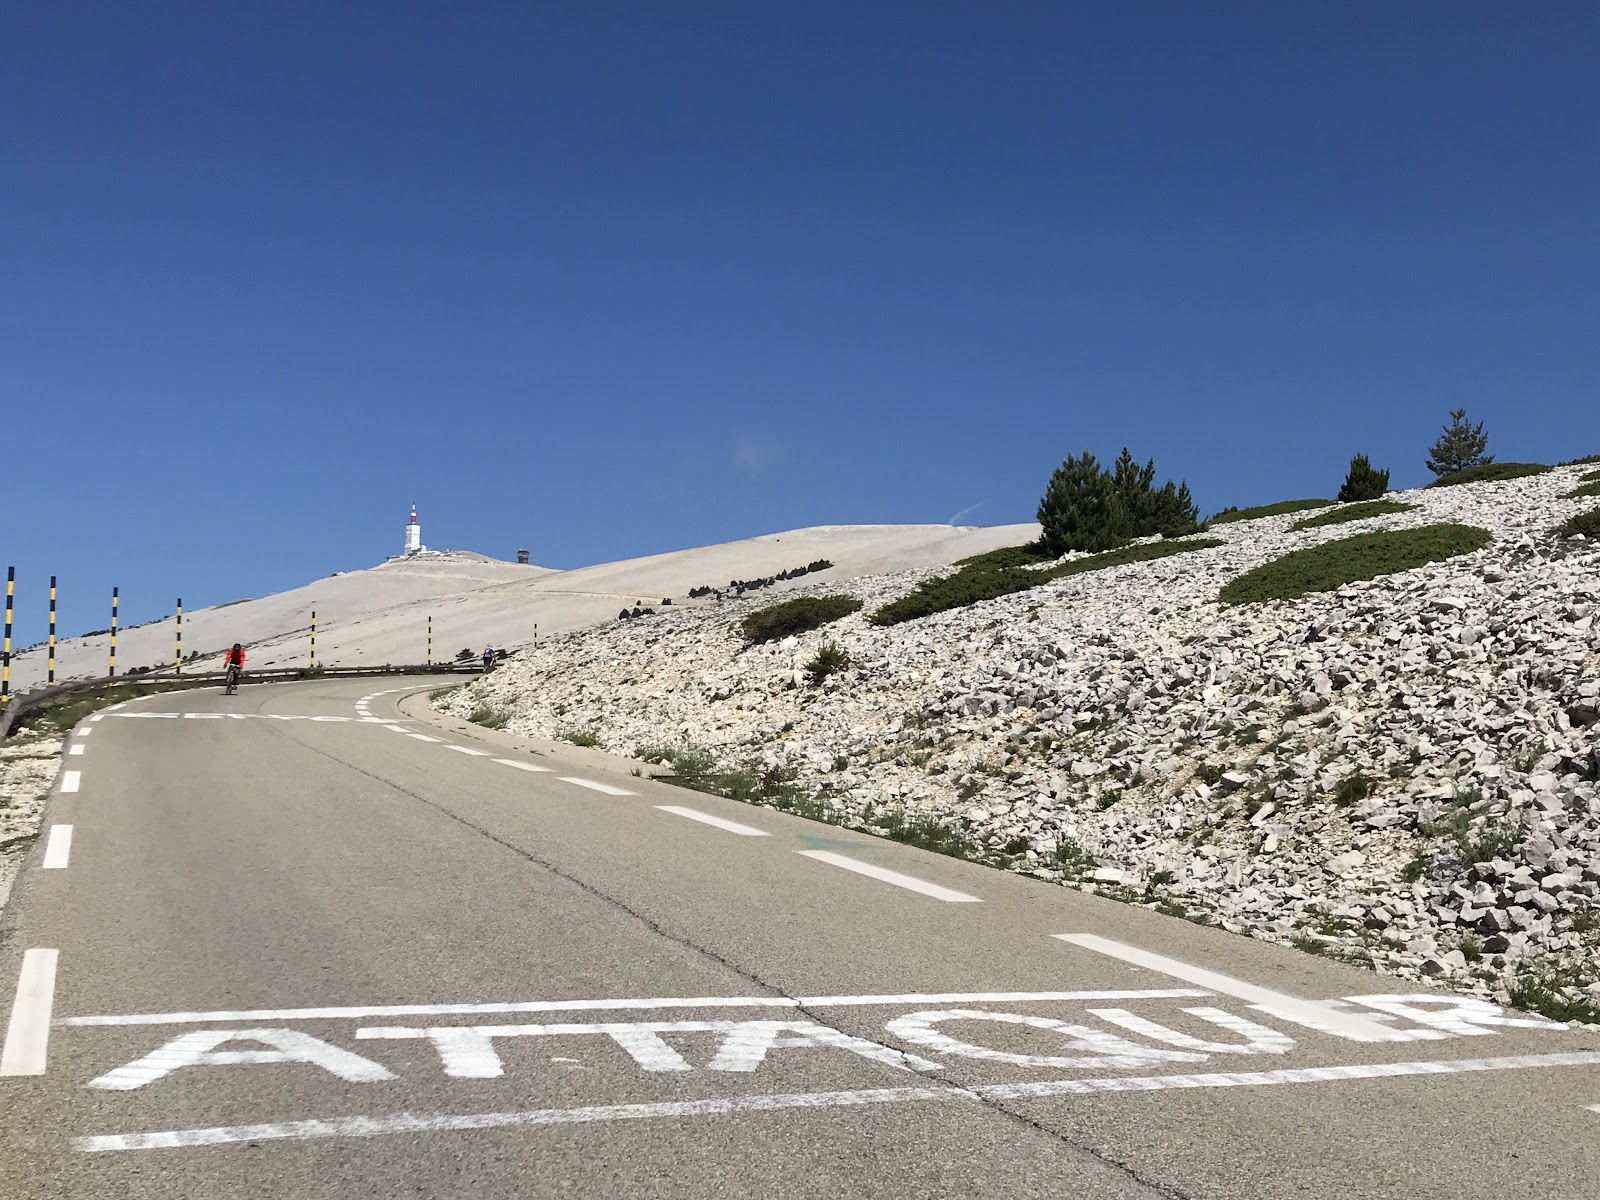 Mont Ventoux radio tower - roadway and Tour de France writing on pavement